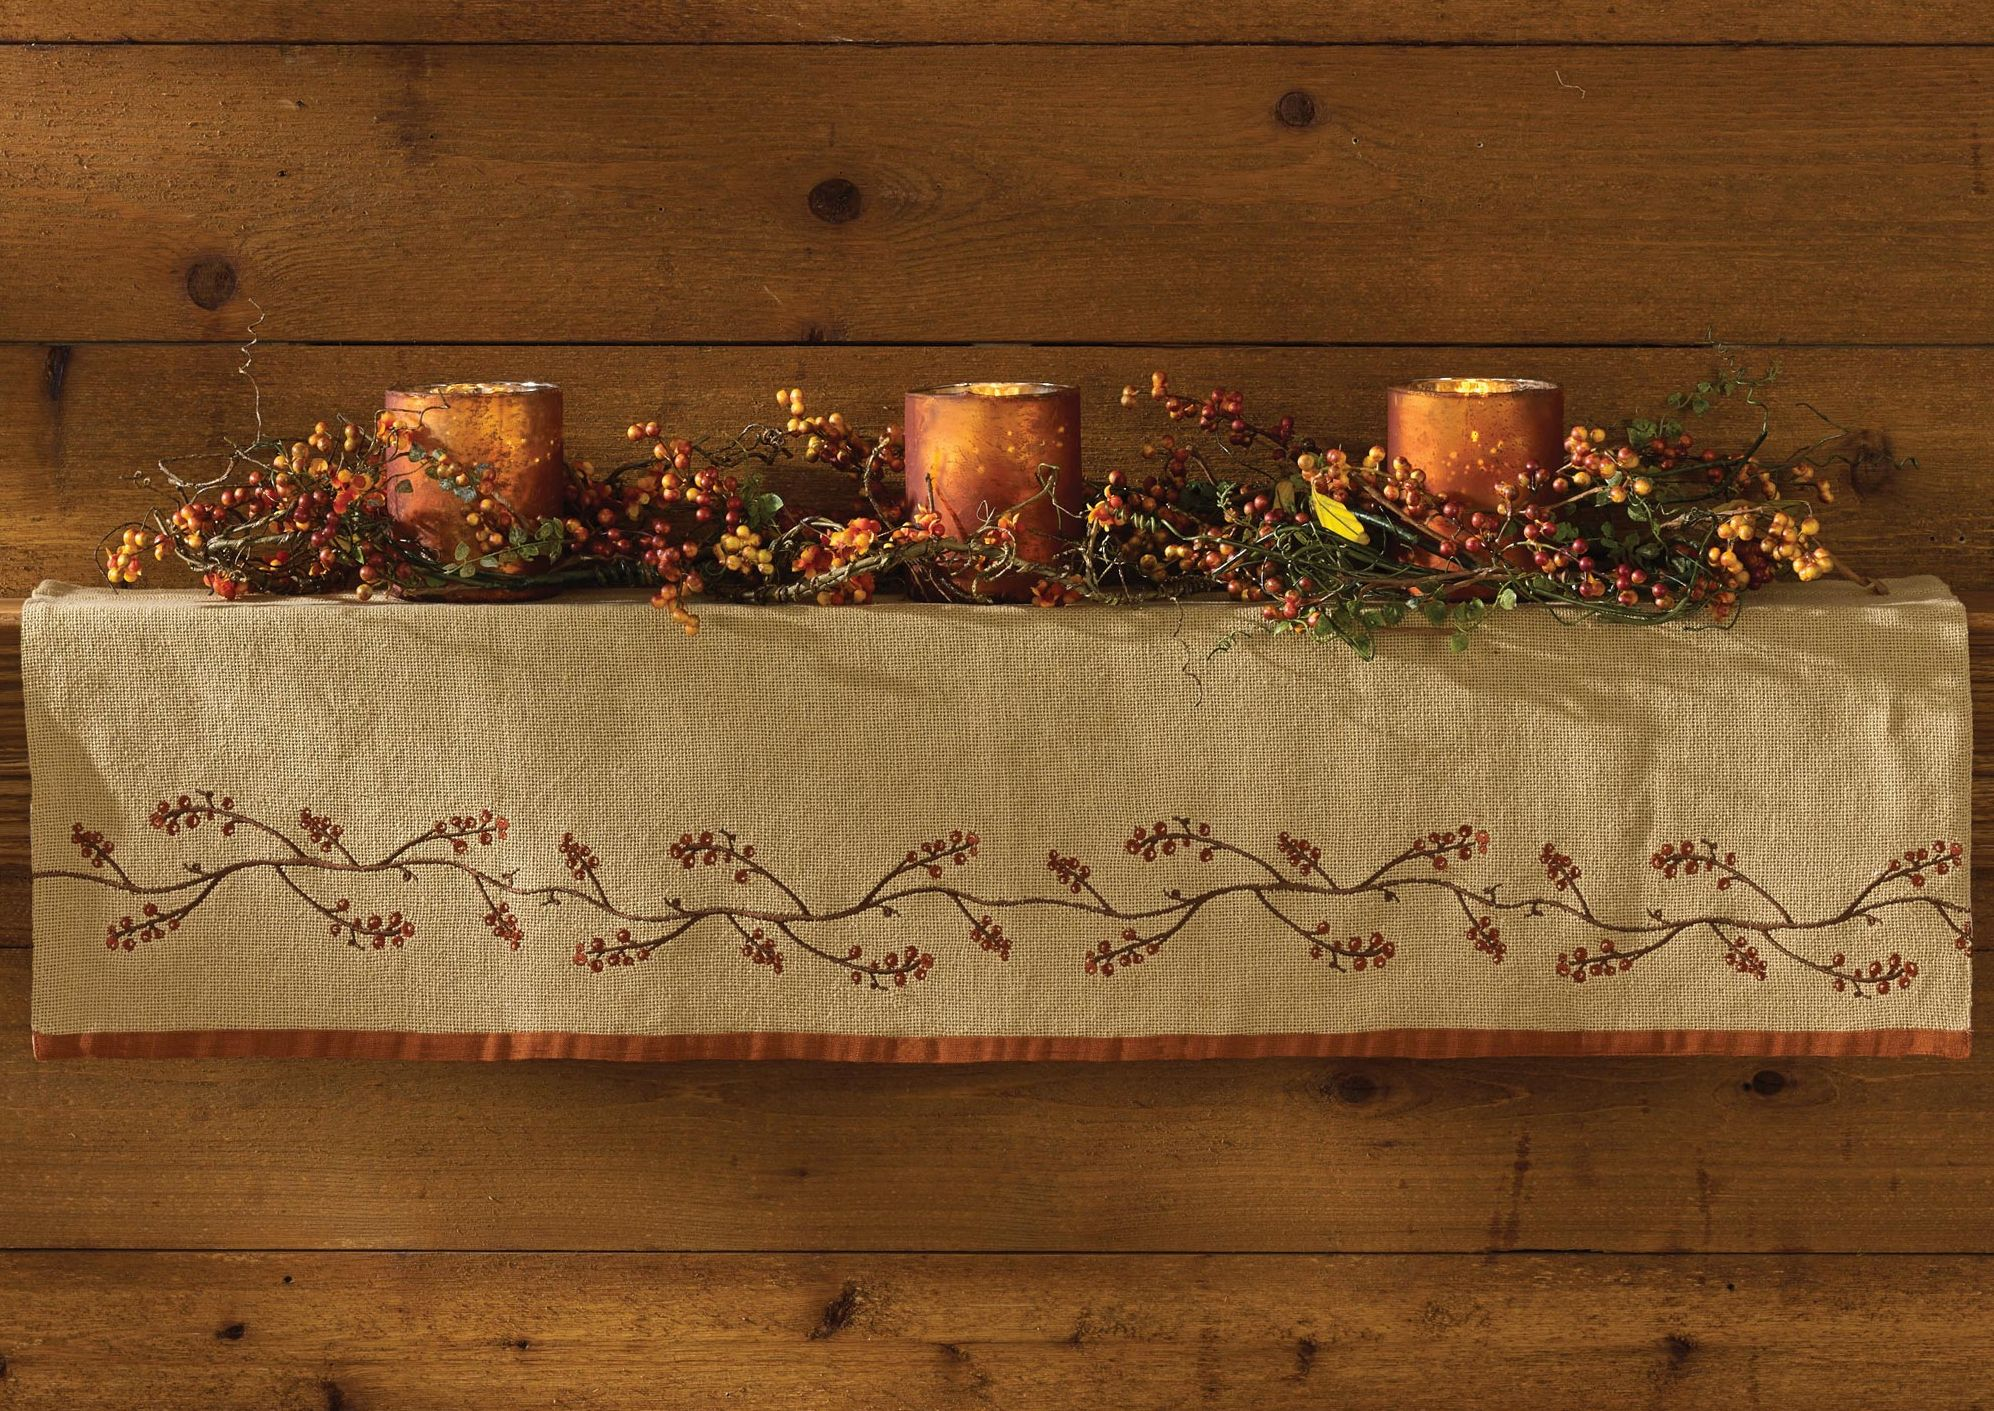 braided kitchen rugs sliding shelves harvest decor for your thanksgiving table | primitive home ...